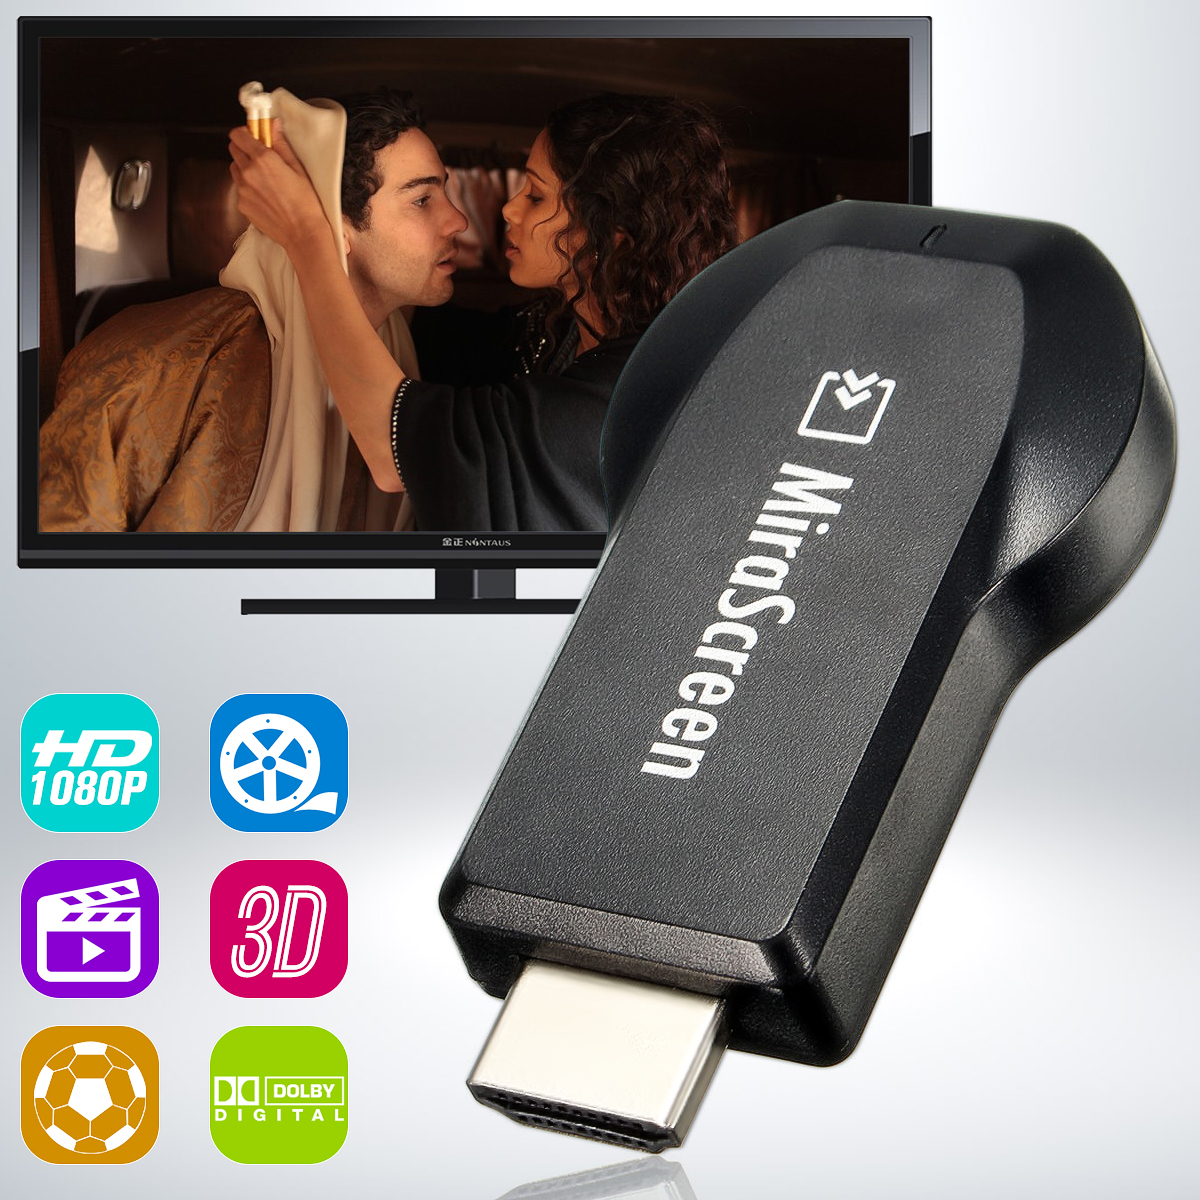 150Mbps 2.4G WiFi Display Dongle TV Stick Wireless Miracast AnyCast 3D Full HD 1080P DLNA Air play Receiver Adapter for TV/IOS/Android Smartphone